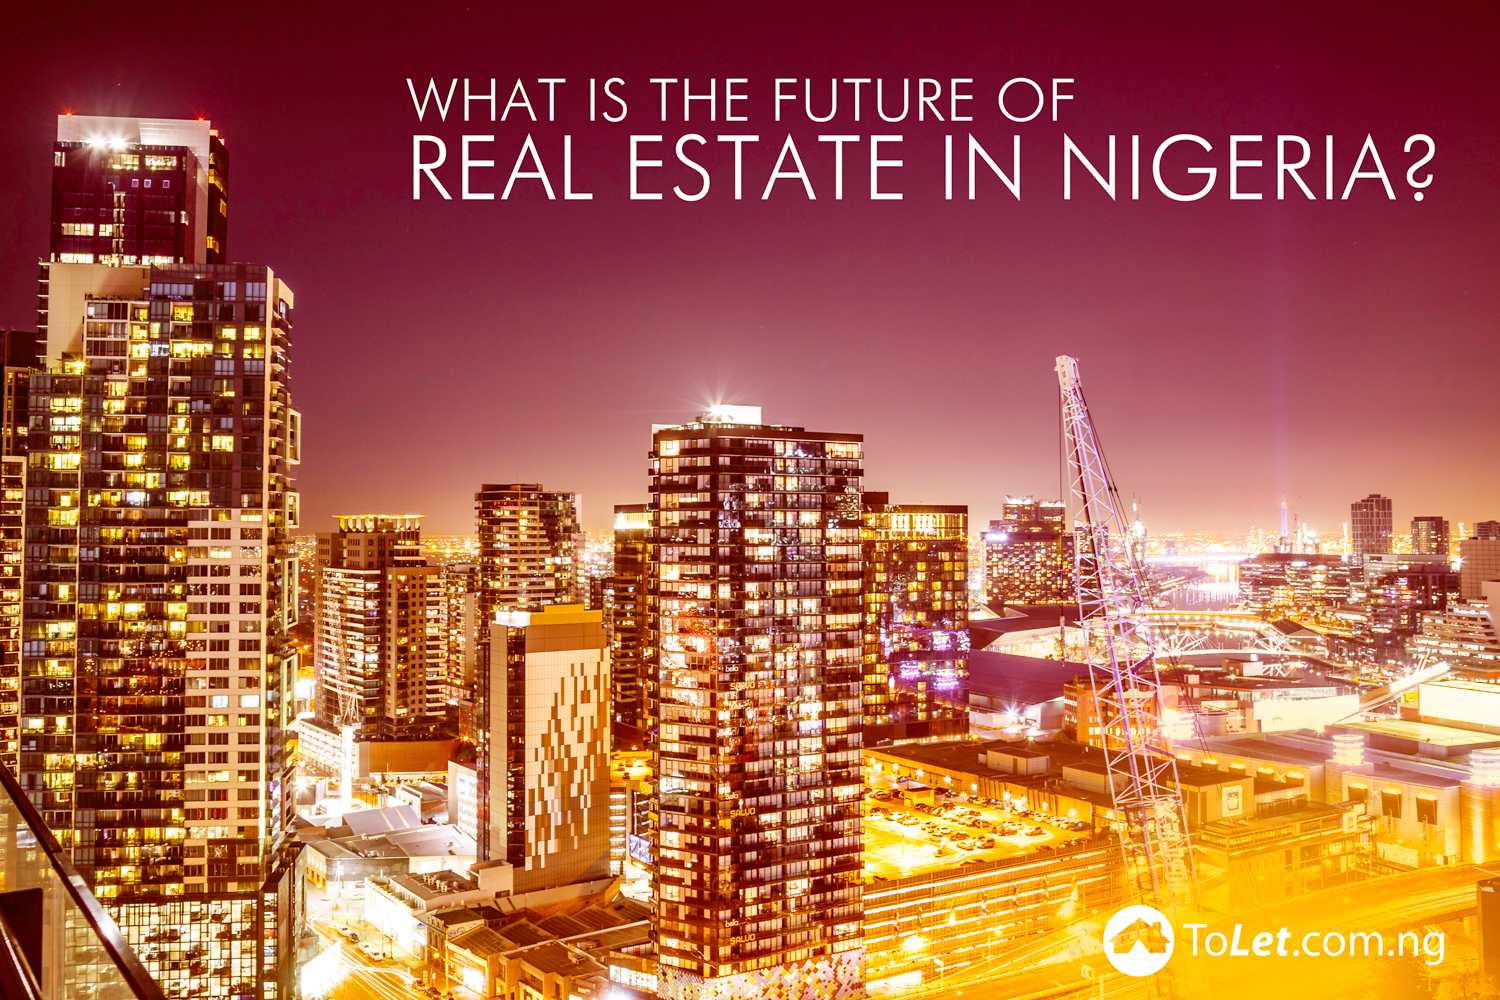 What is the Future of Real Estate in Nigeria